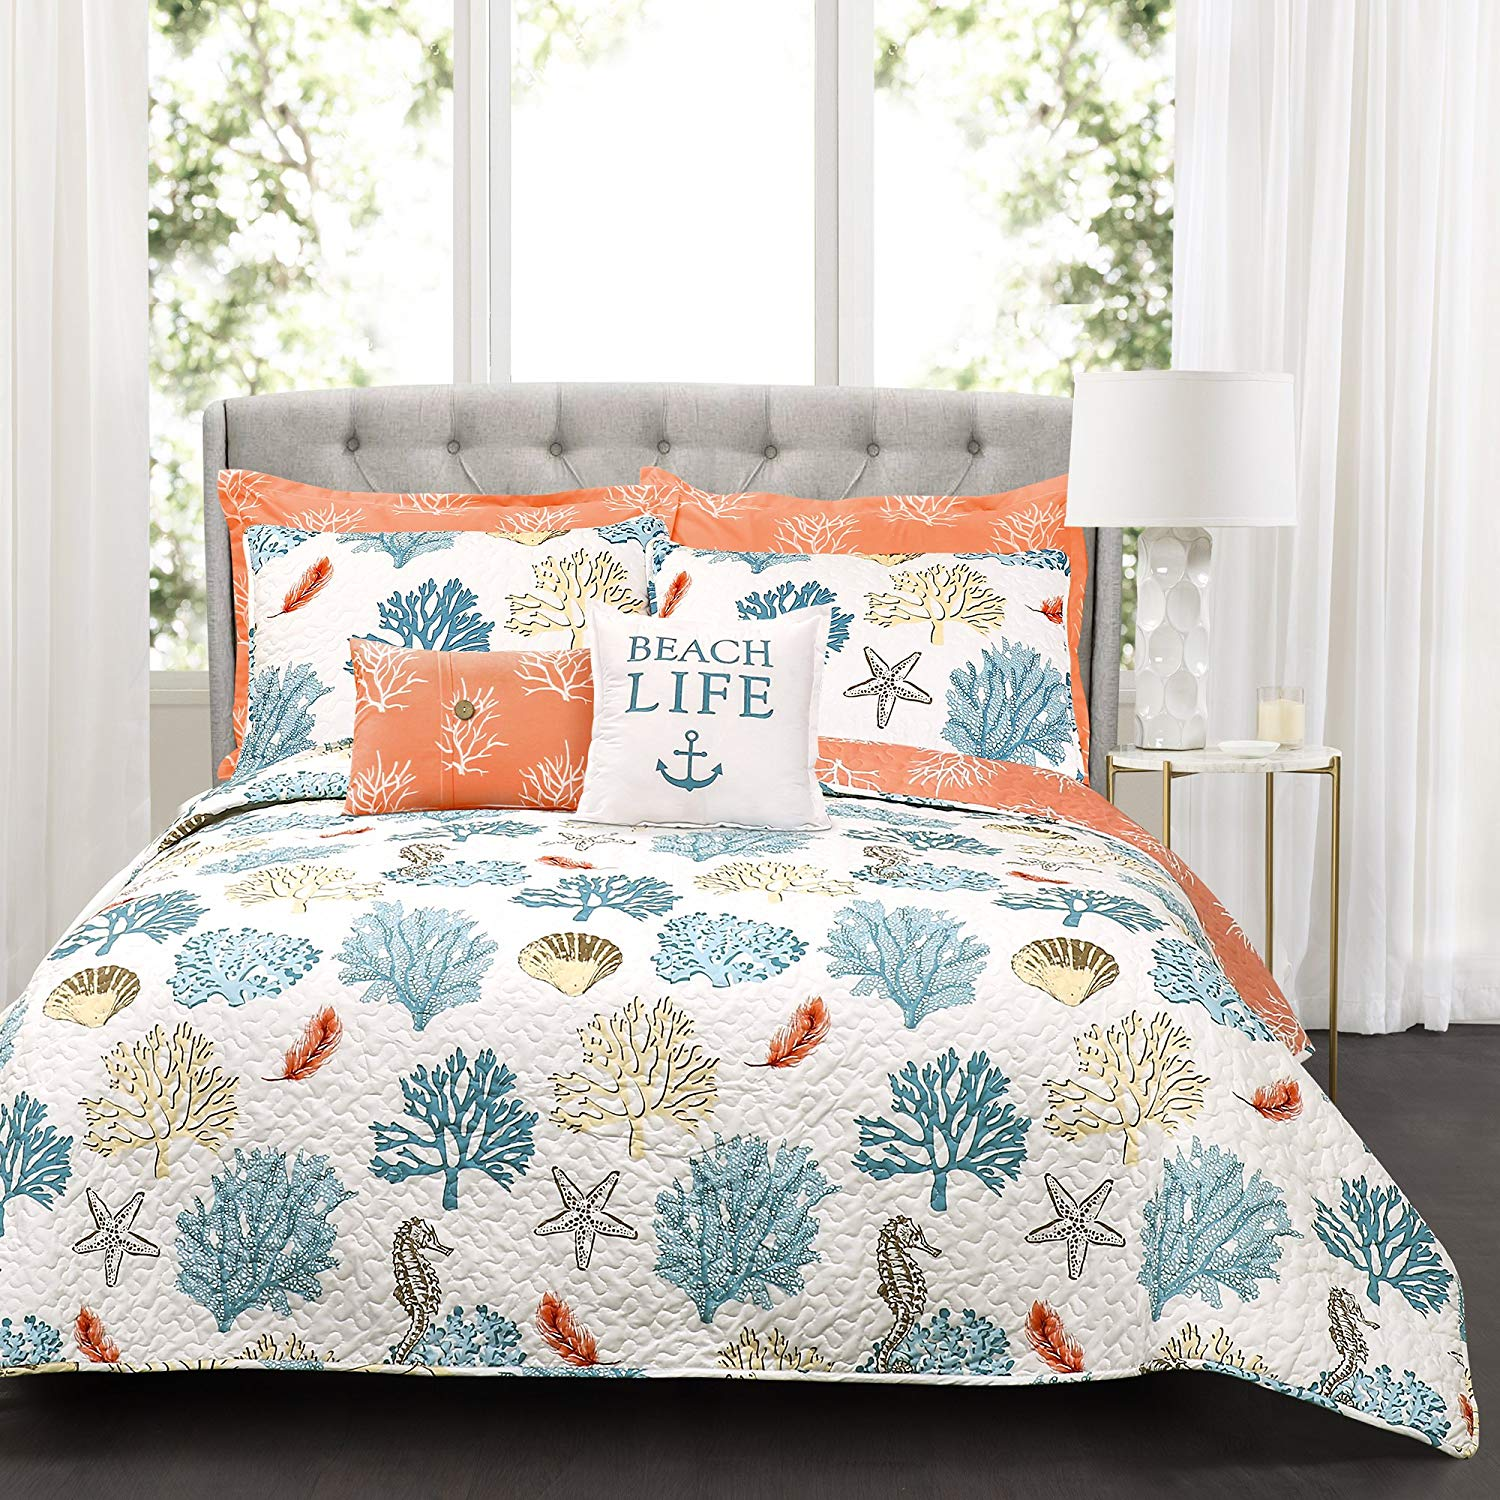 Luxury 7pc Coral Teal Beach Starfish Comforter Set And Decorative Pillows